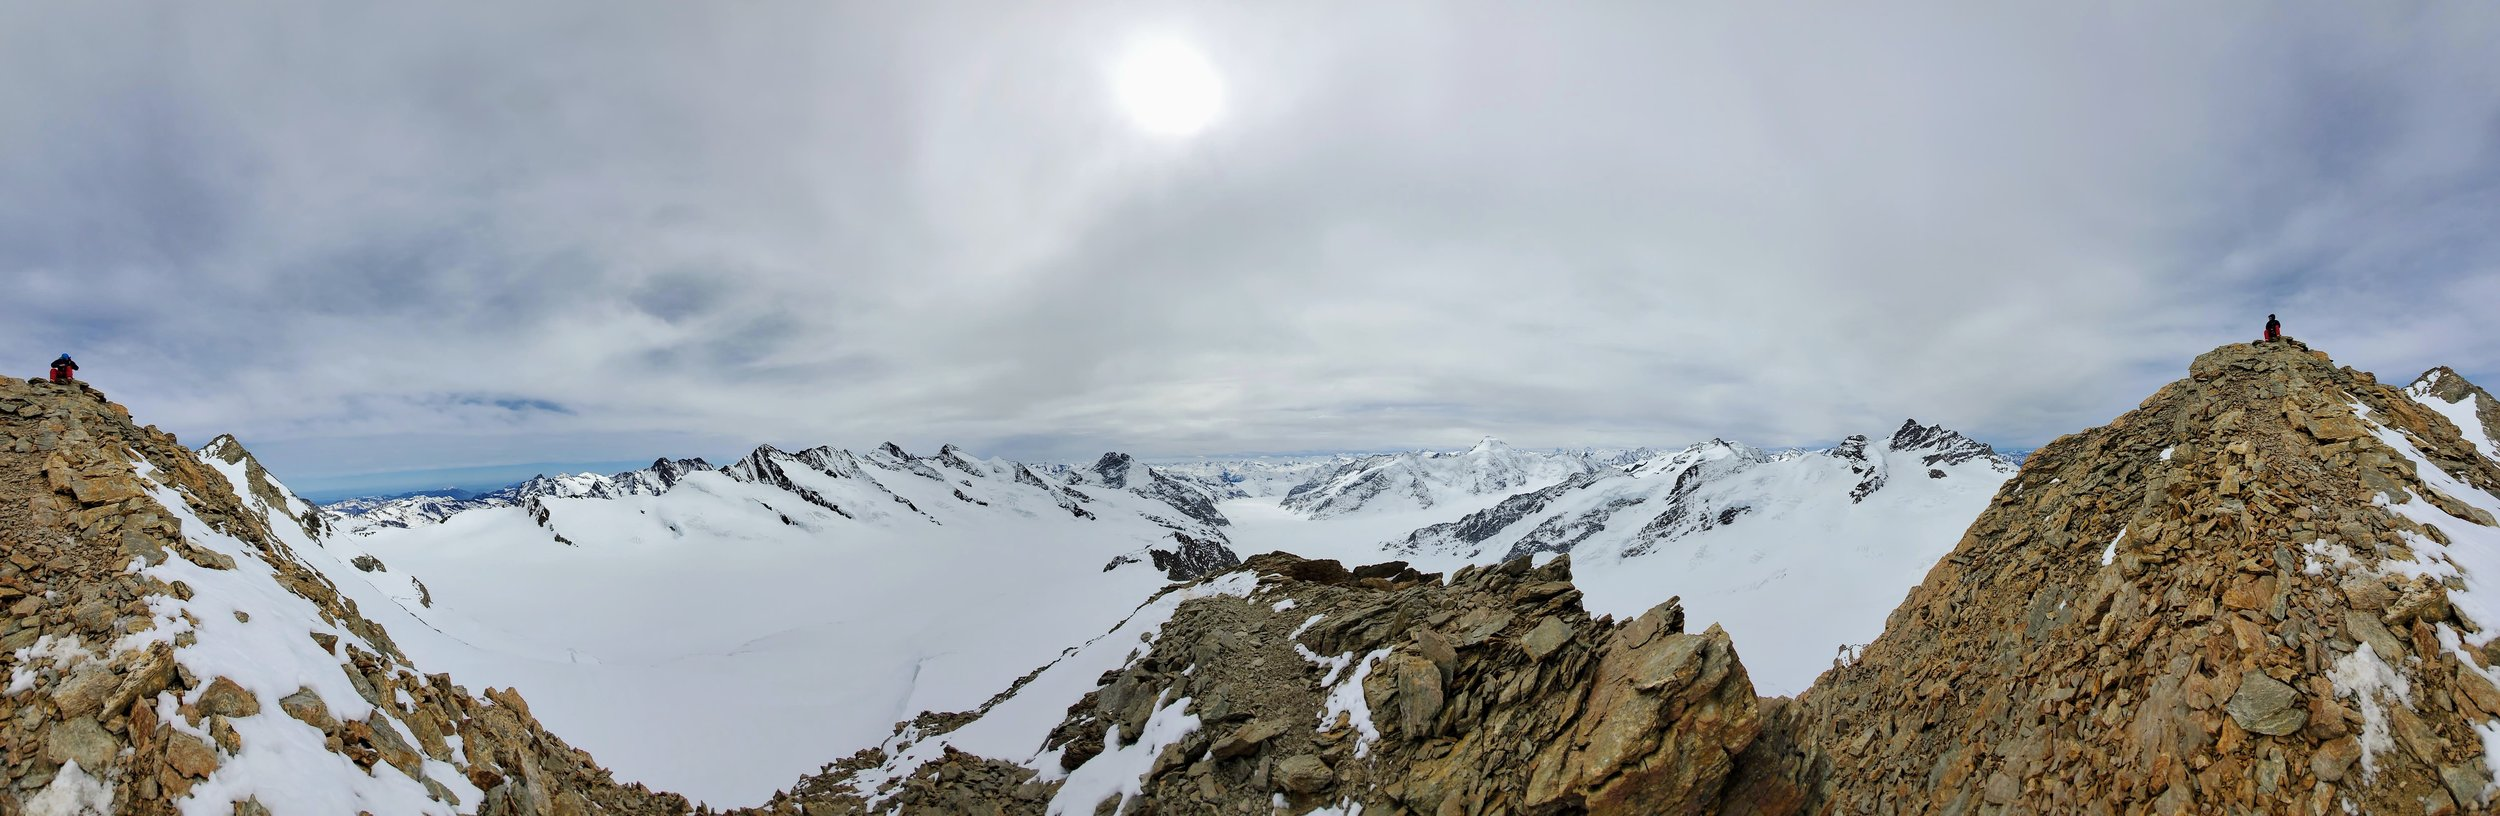 Panoramic shot from the South Summit of the Trugberg.